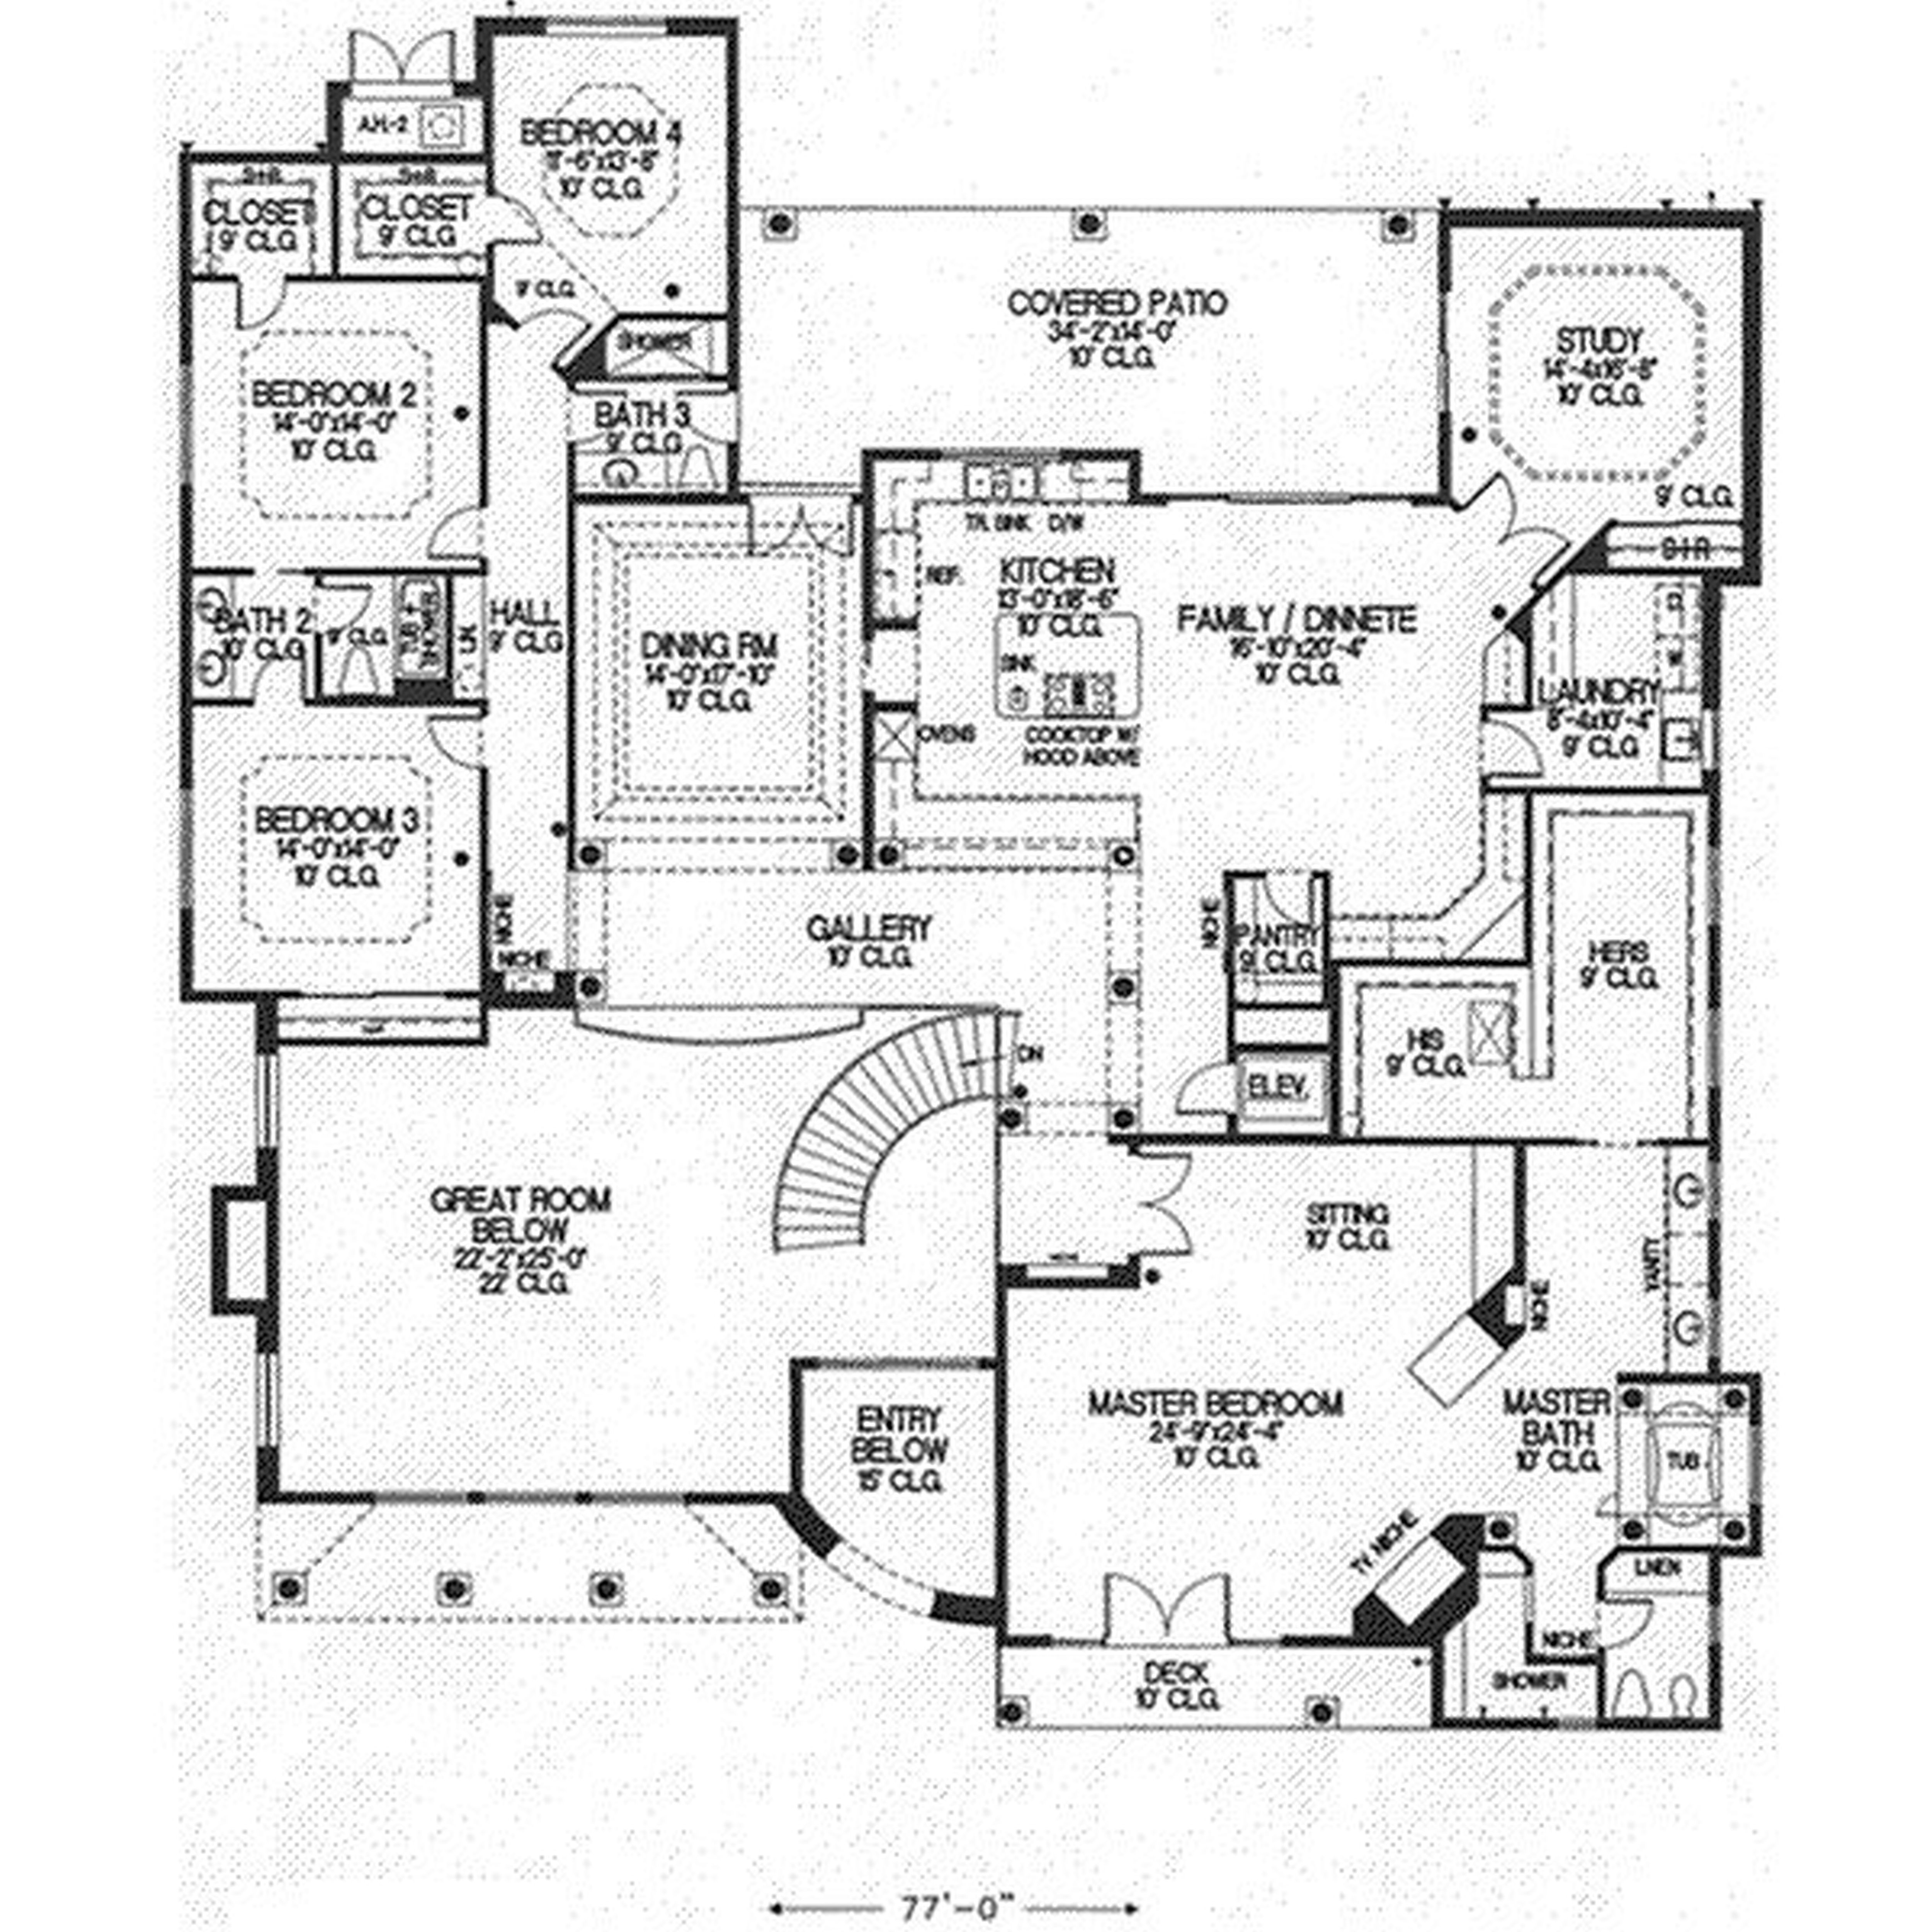 5000x5000 Drawing Desing Double Bubble Map Maker Floor Plan Of Hotel